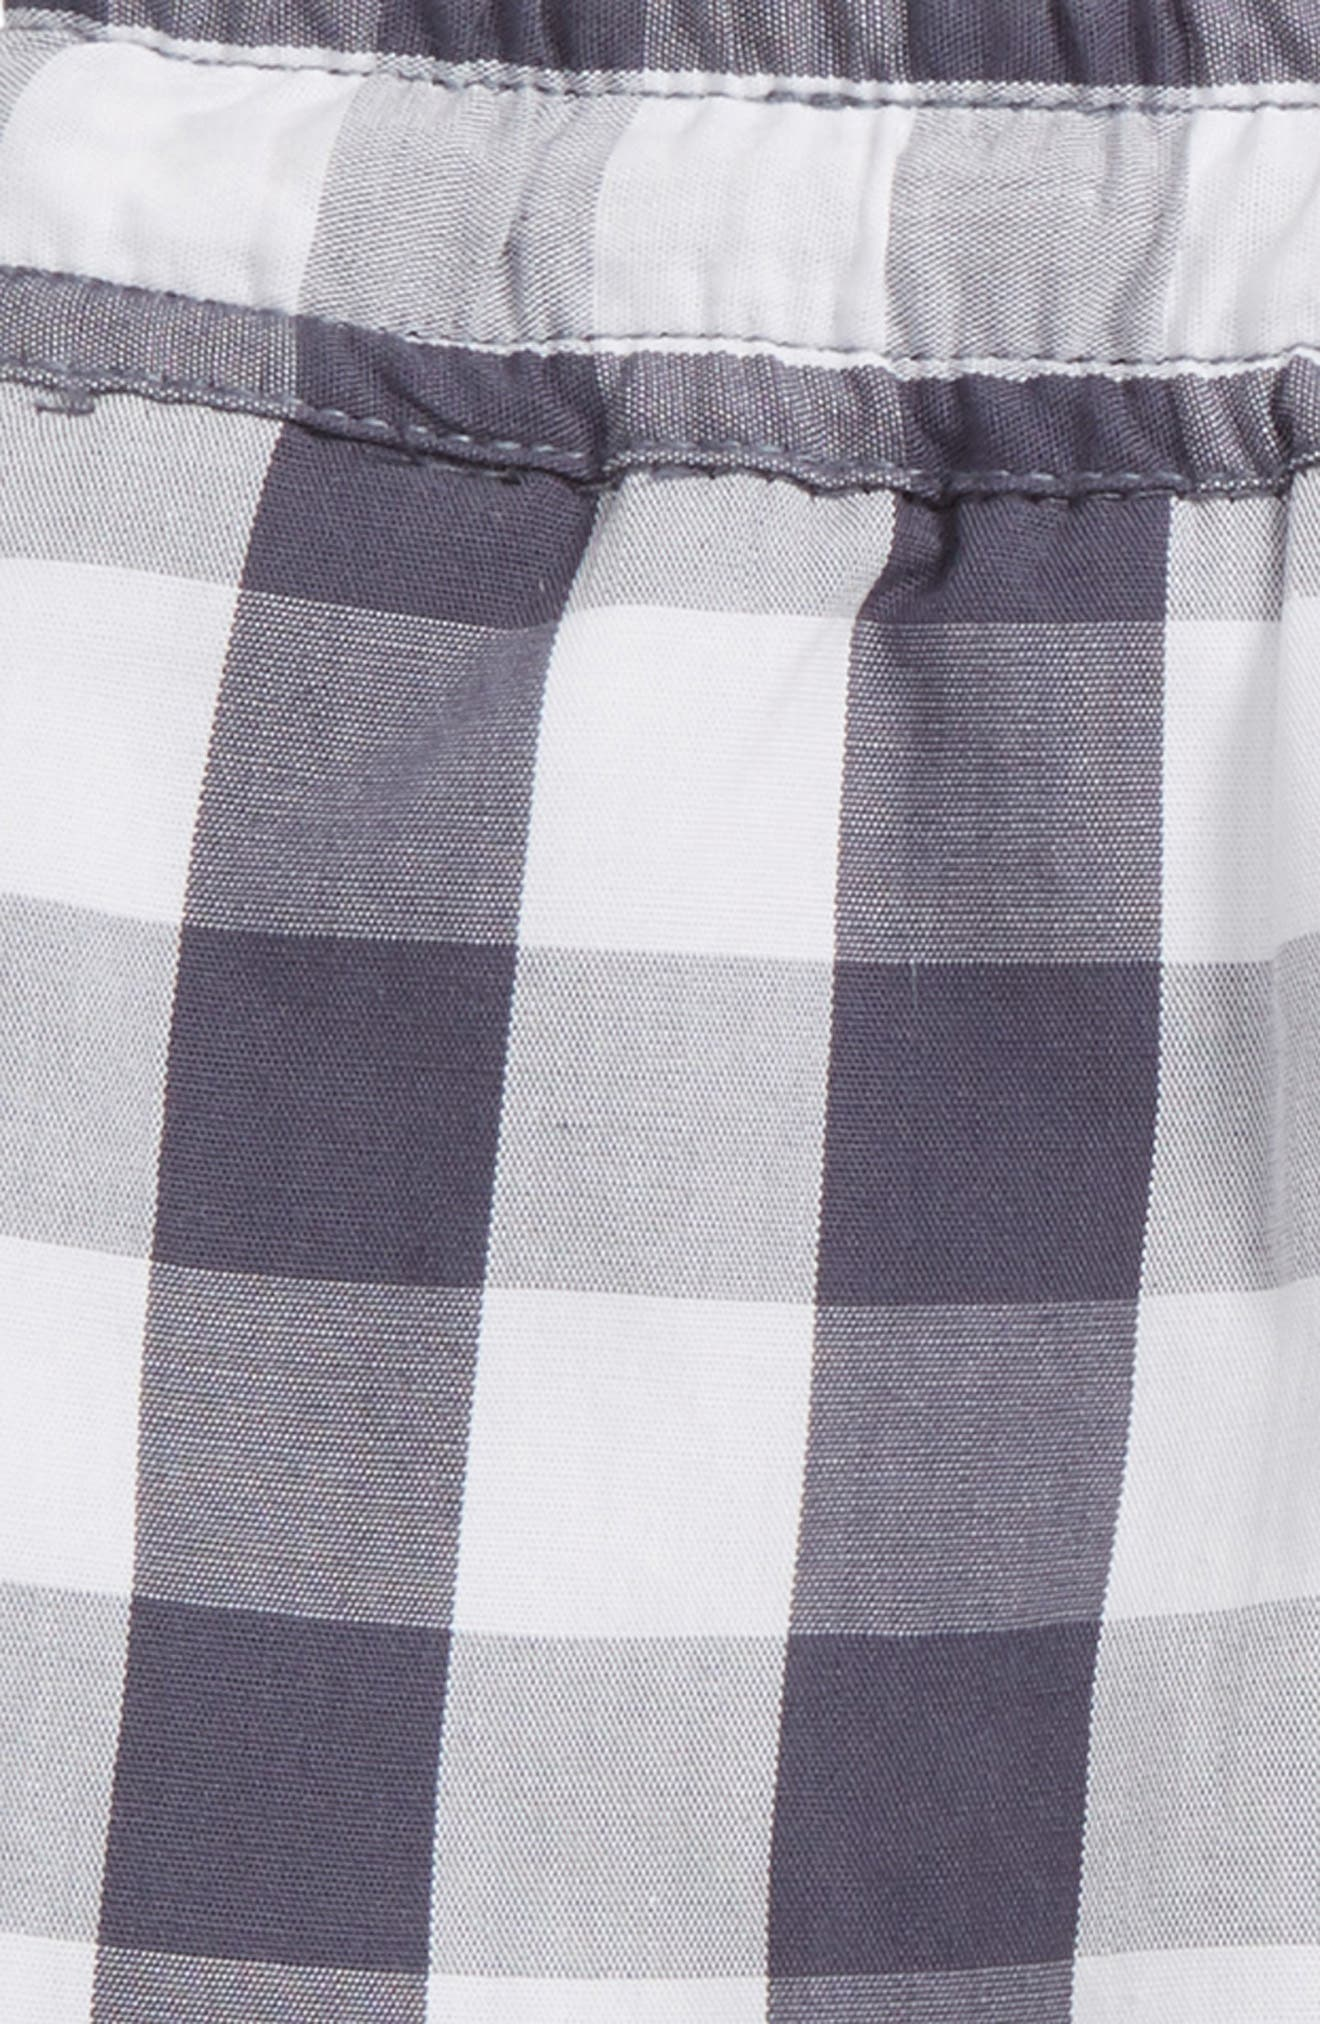 Anders Gingham Shorts,                             Alternate thumbnail 2, color,                             025